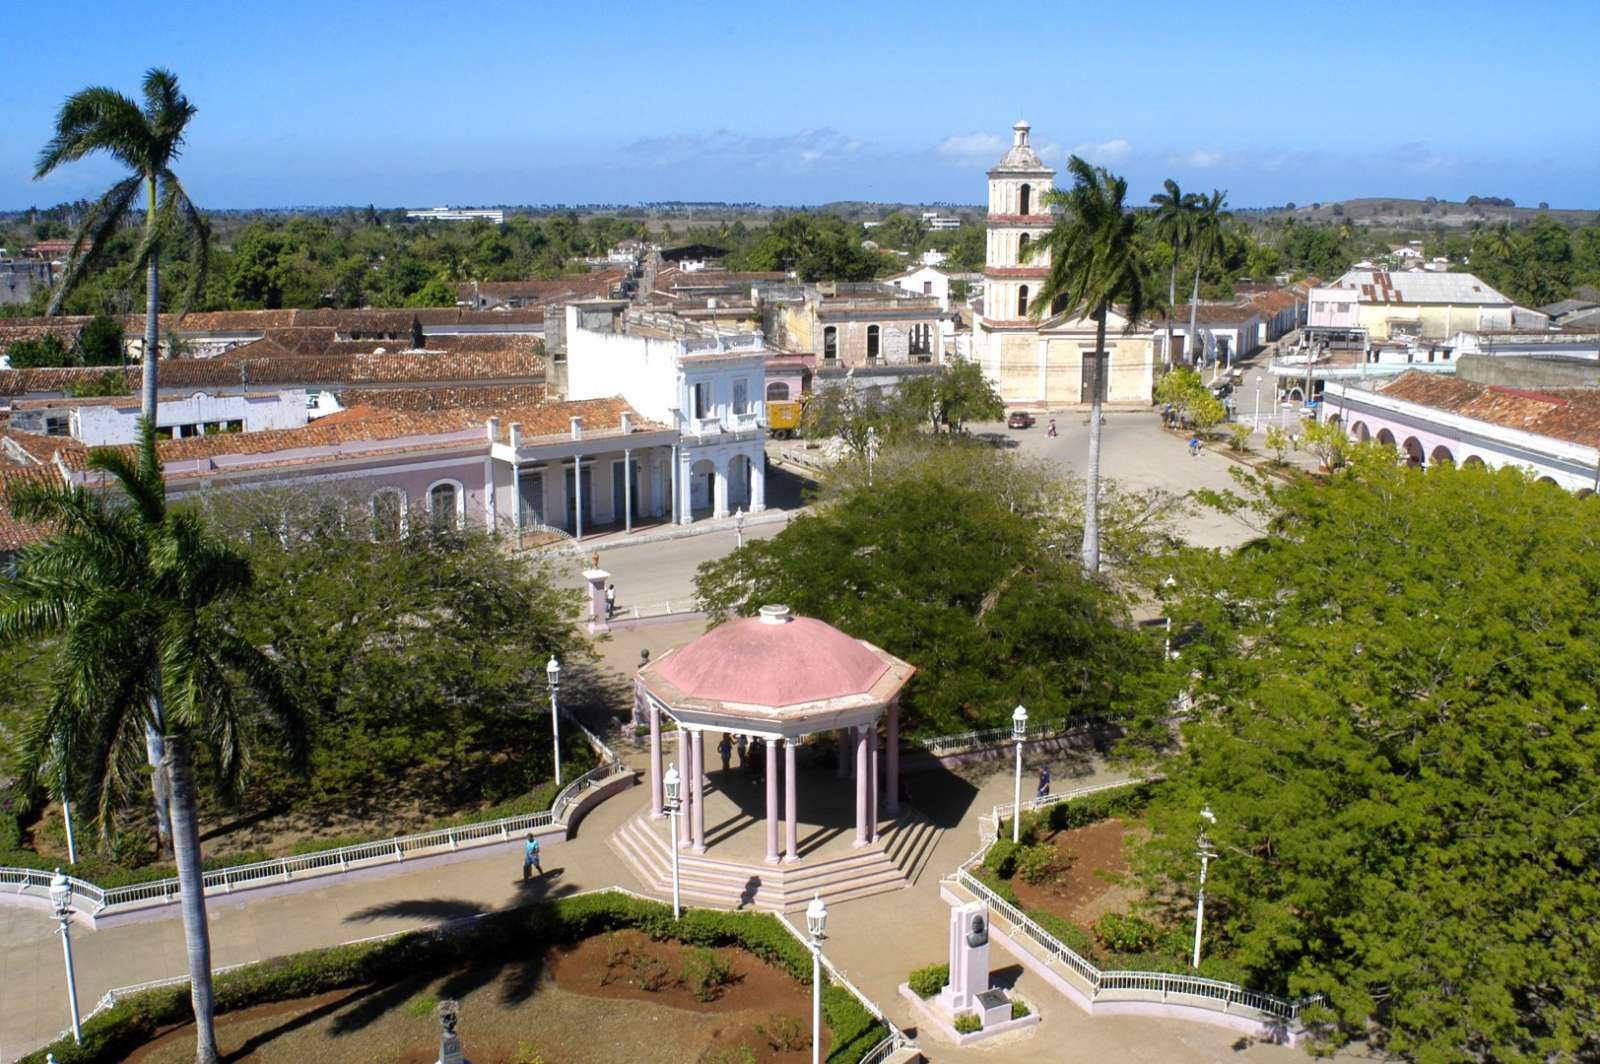 Aerial view of Remedios in Cuba